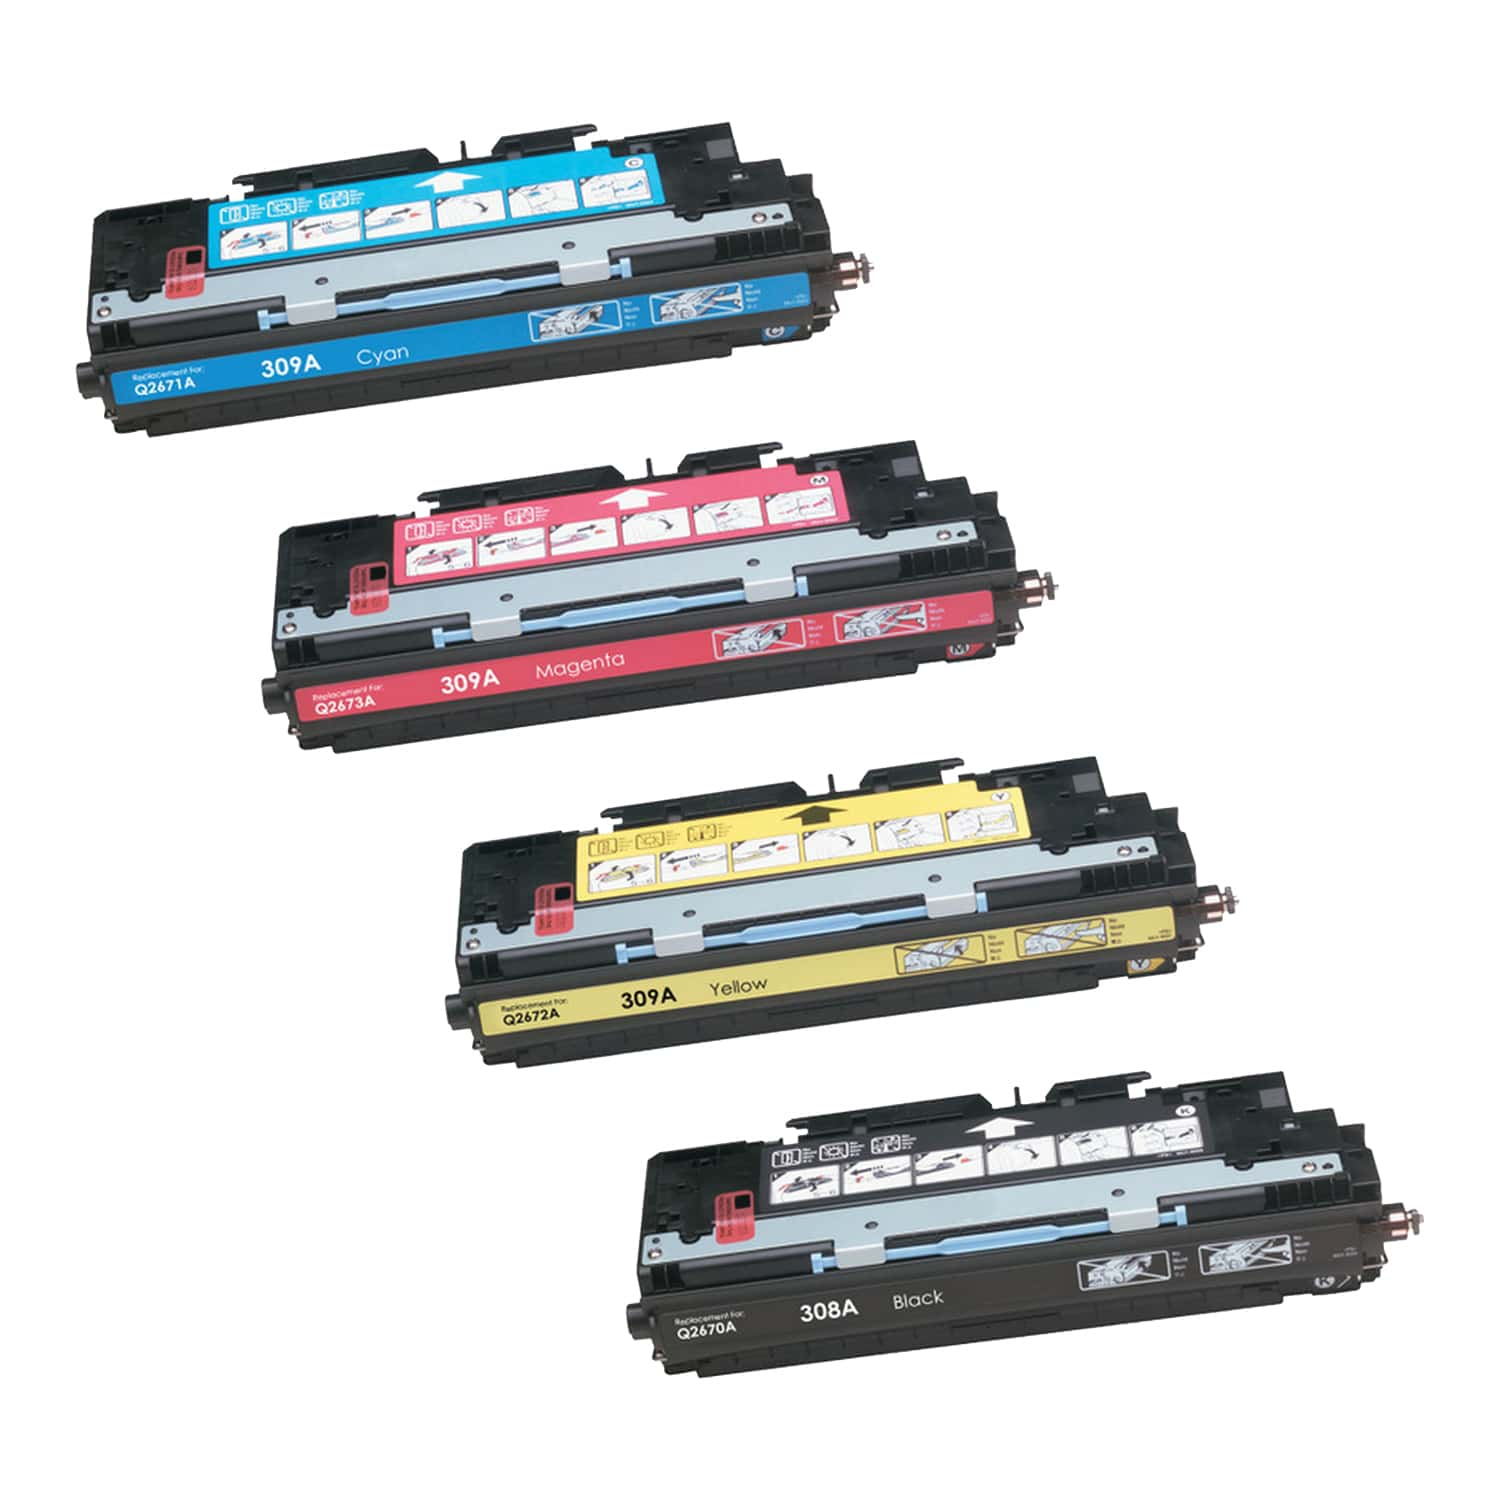 Remanufactured HP Toner Cartridge Bundlpack 309A CMYK Pack - 4 Cartridges